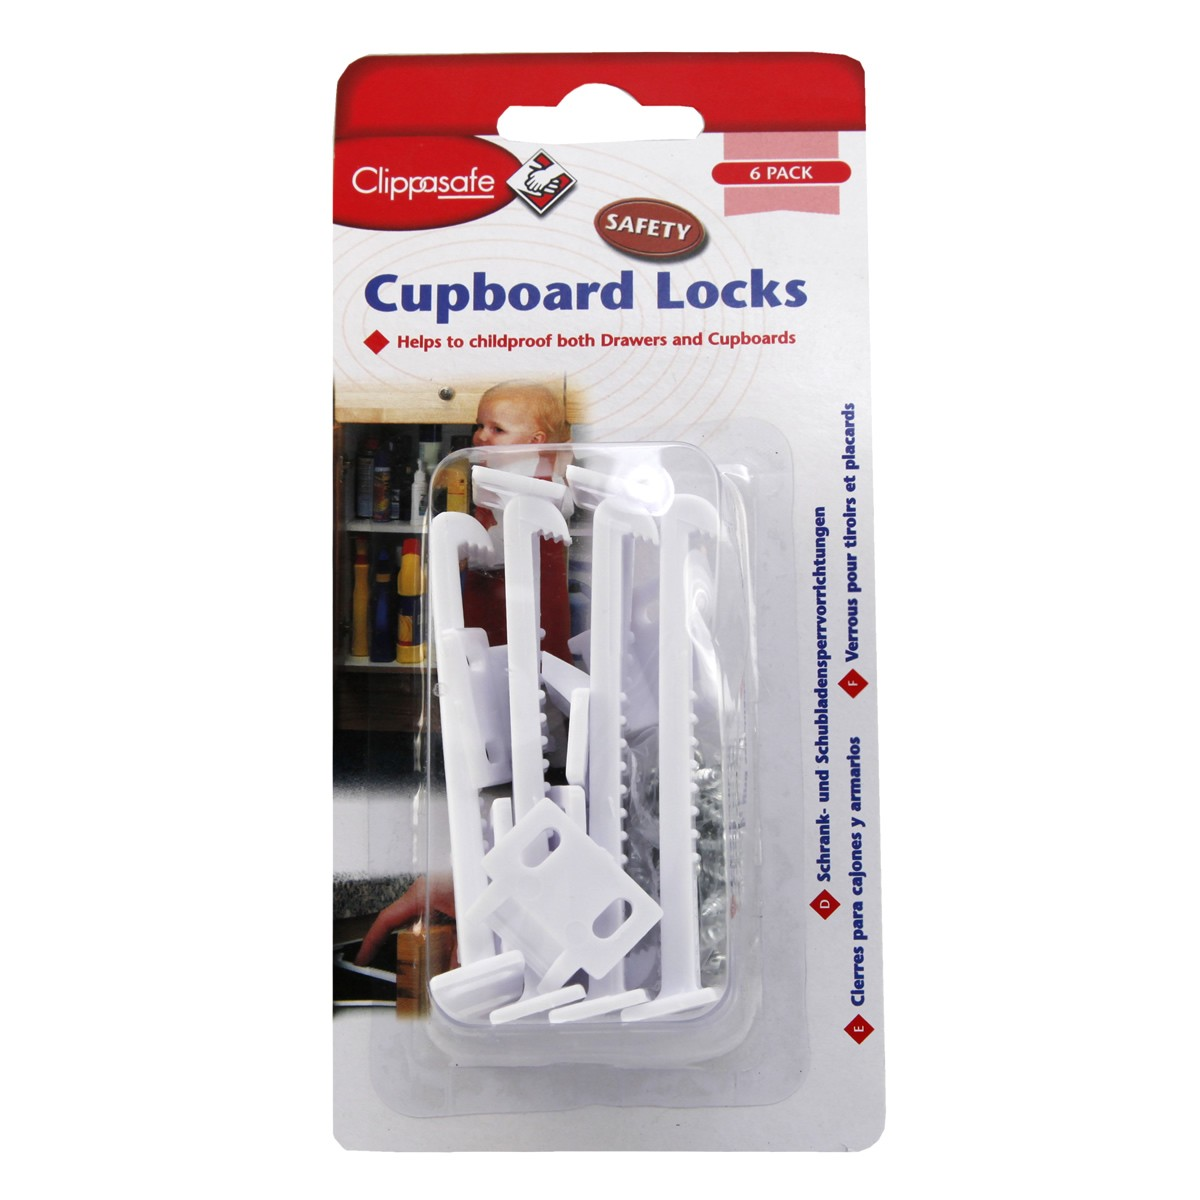 Clippasafe Cupboard Locks - 6 pack